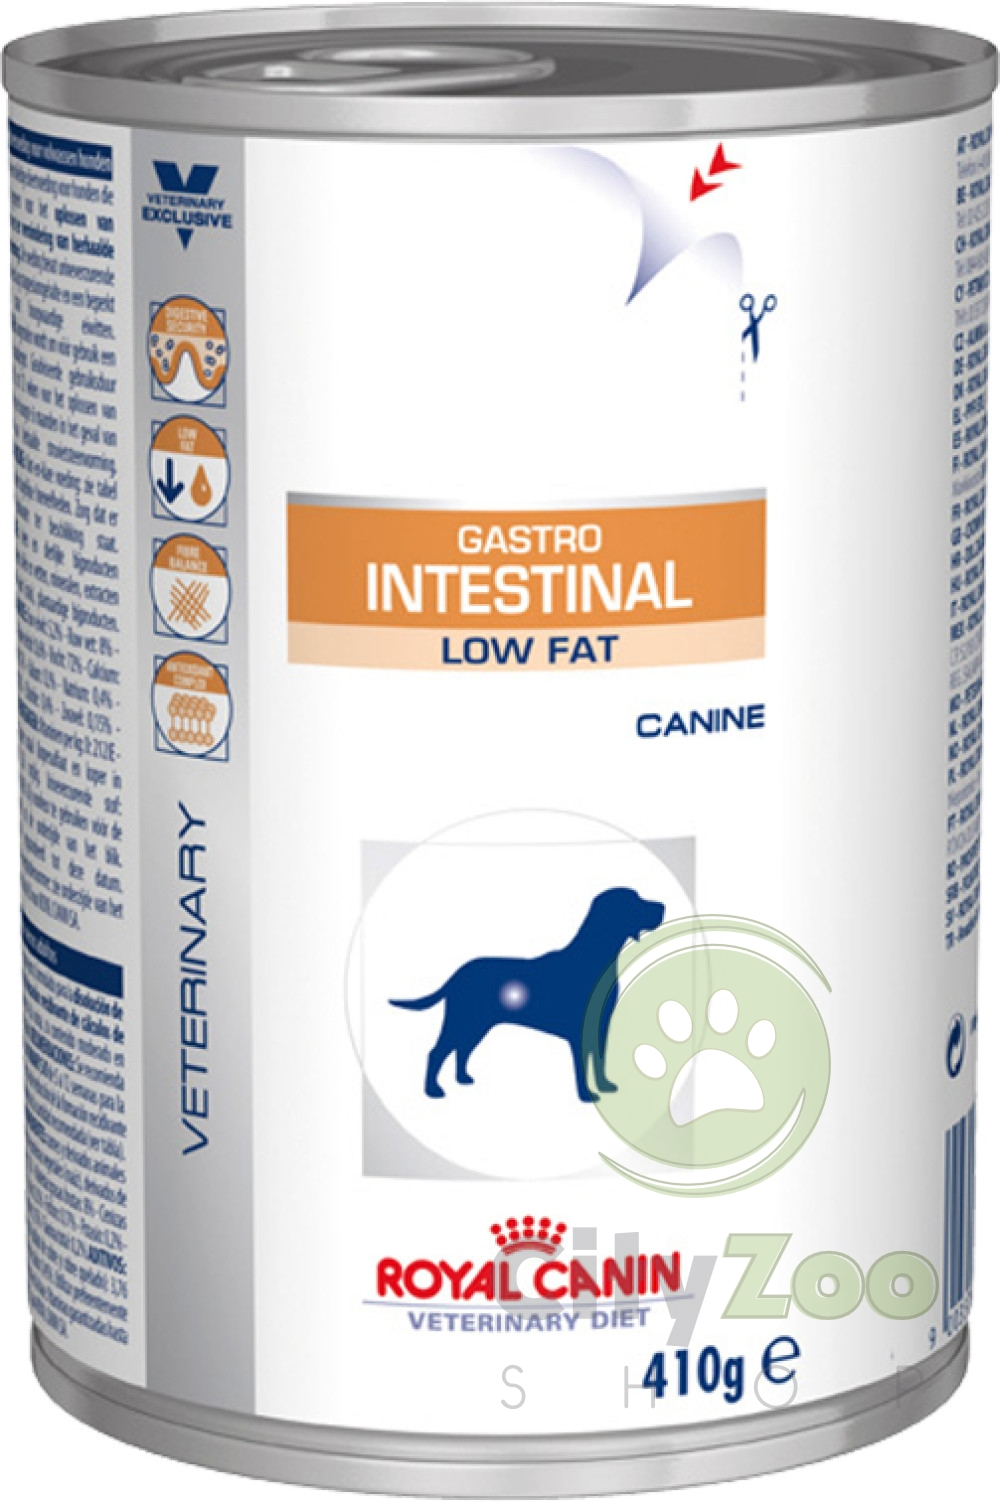 zoo/Royal_Canin_Gastro_Intestinal_Low_Fat_Canine_Cans